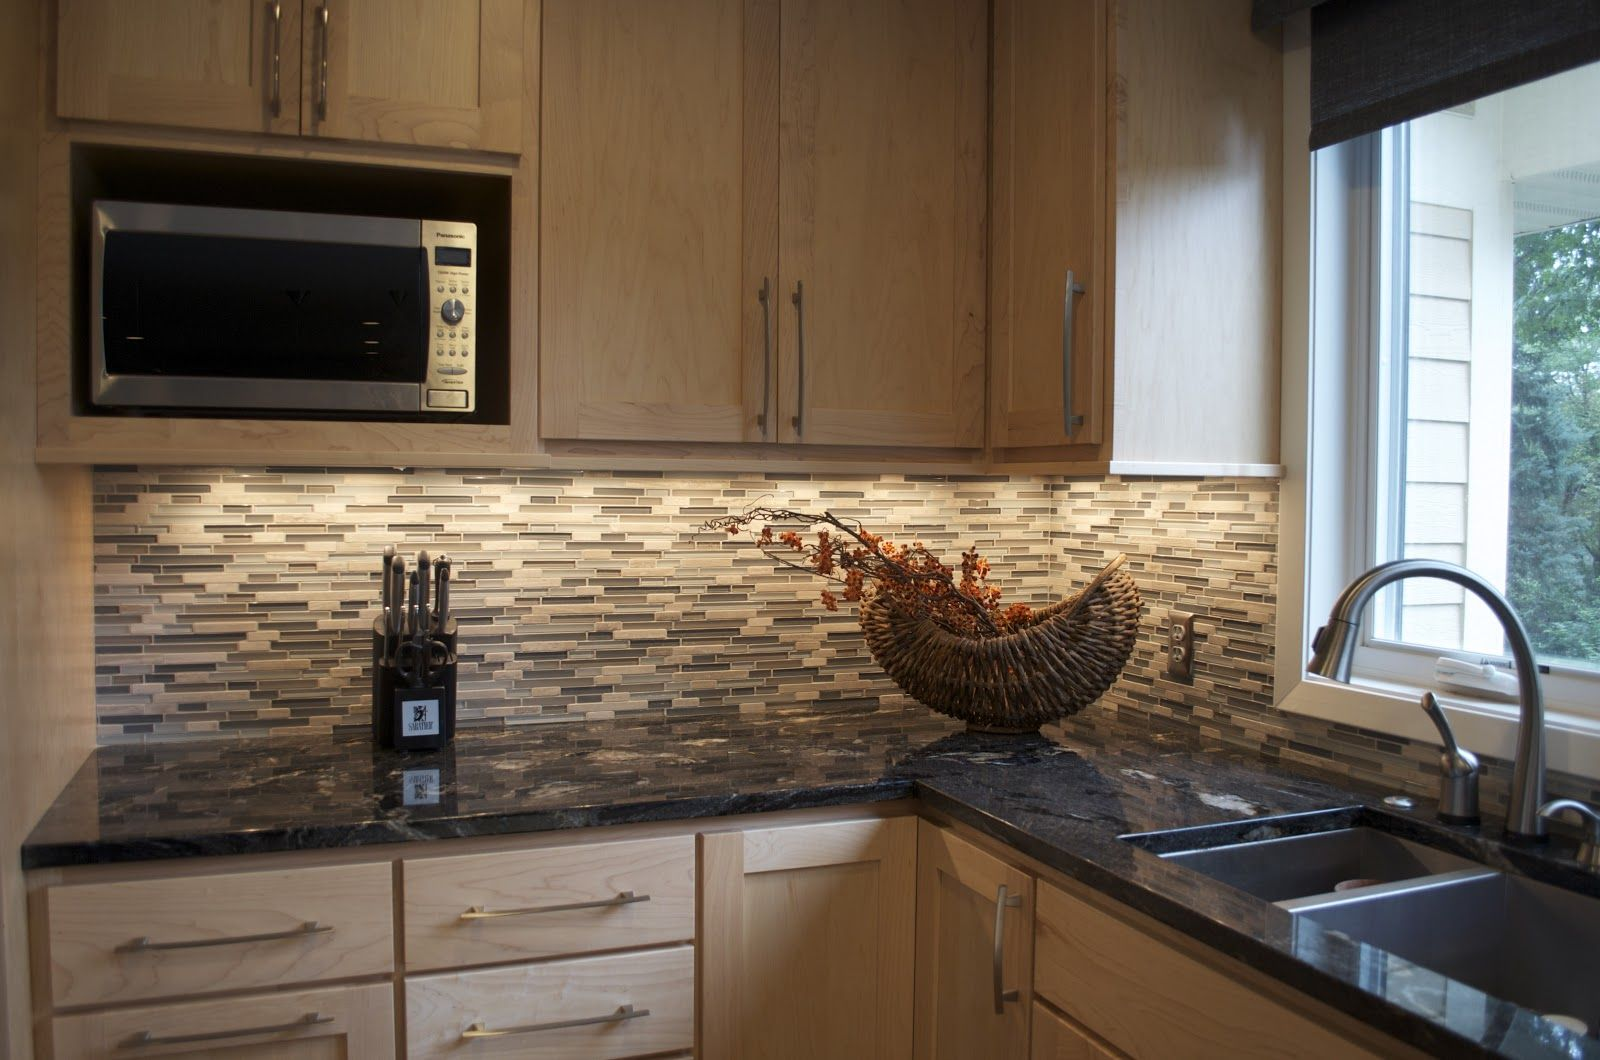 maple cabinet backsplash - Google Search in 2019 | Kitchen ... on Backsplash Ideas For Maple Cabinets  id=49625